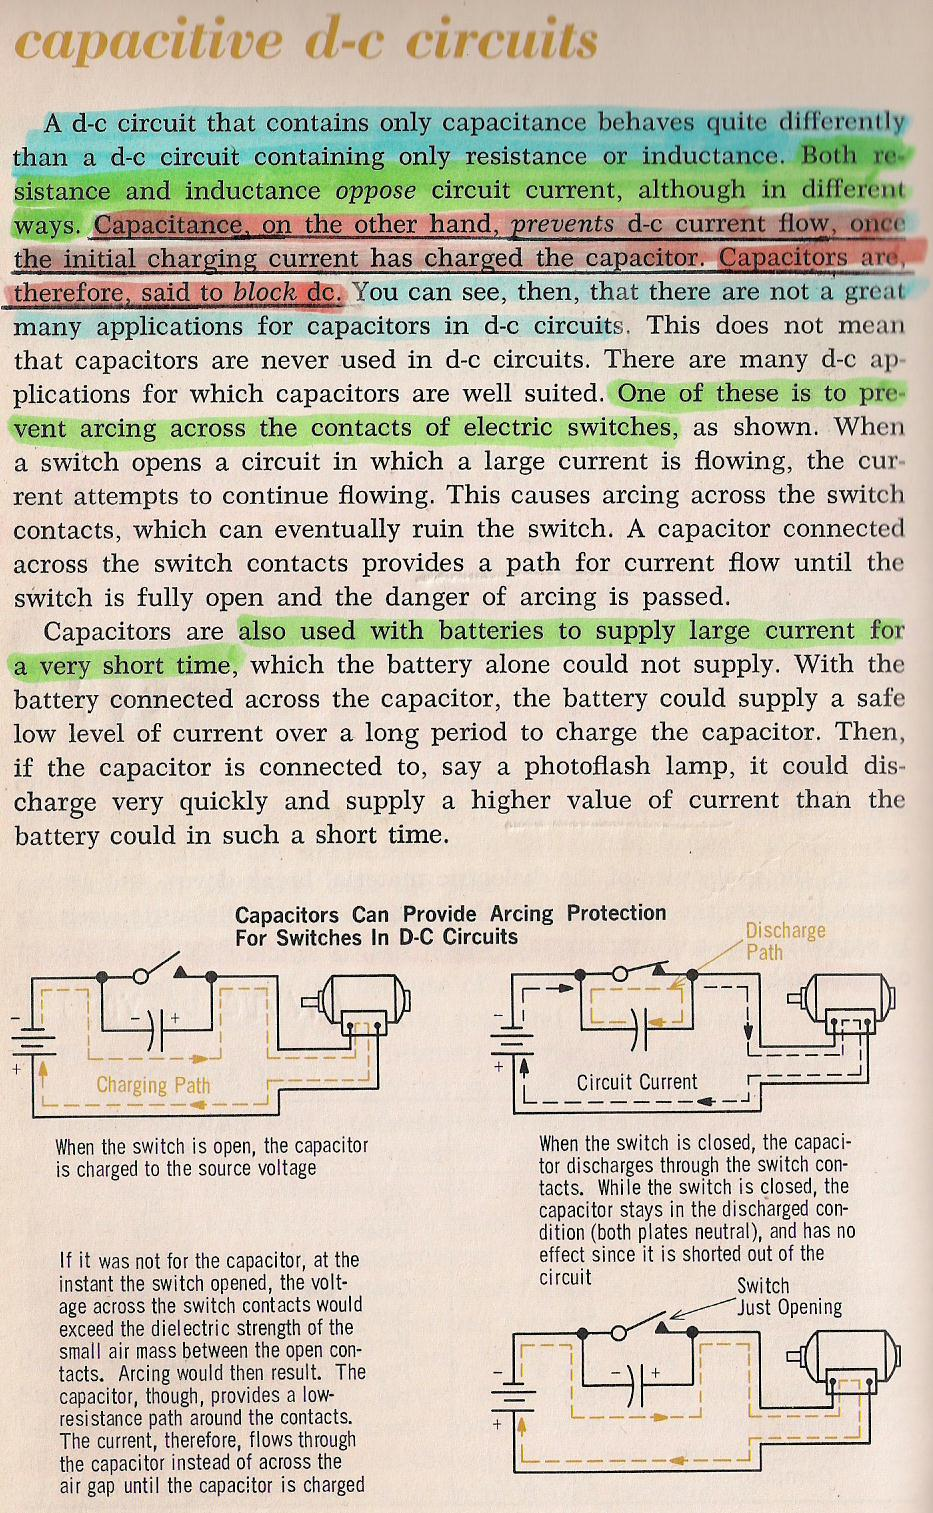 Dc Circuits Capacitors In 018 Series And Parallel Resistive Circuit Problems By Larry E Gugle K4rfepdf